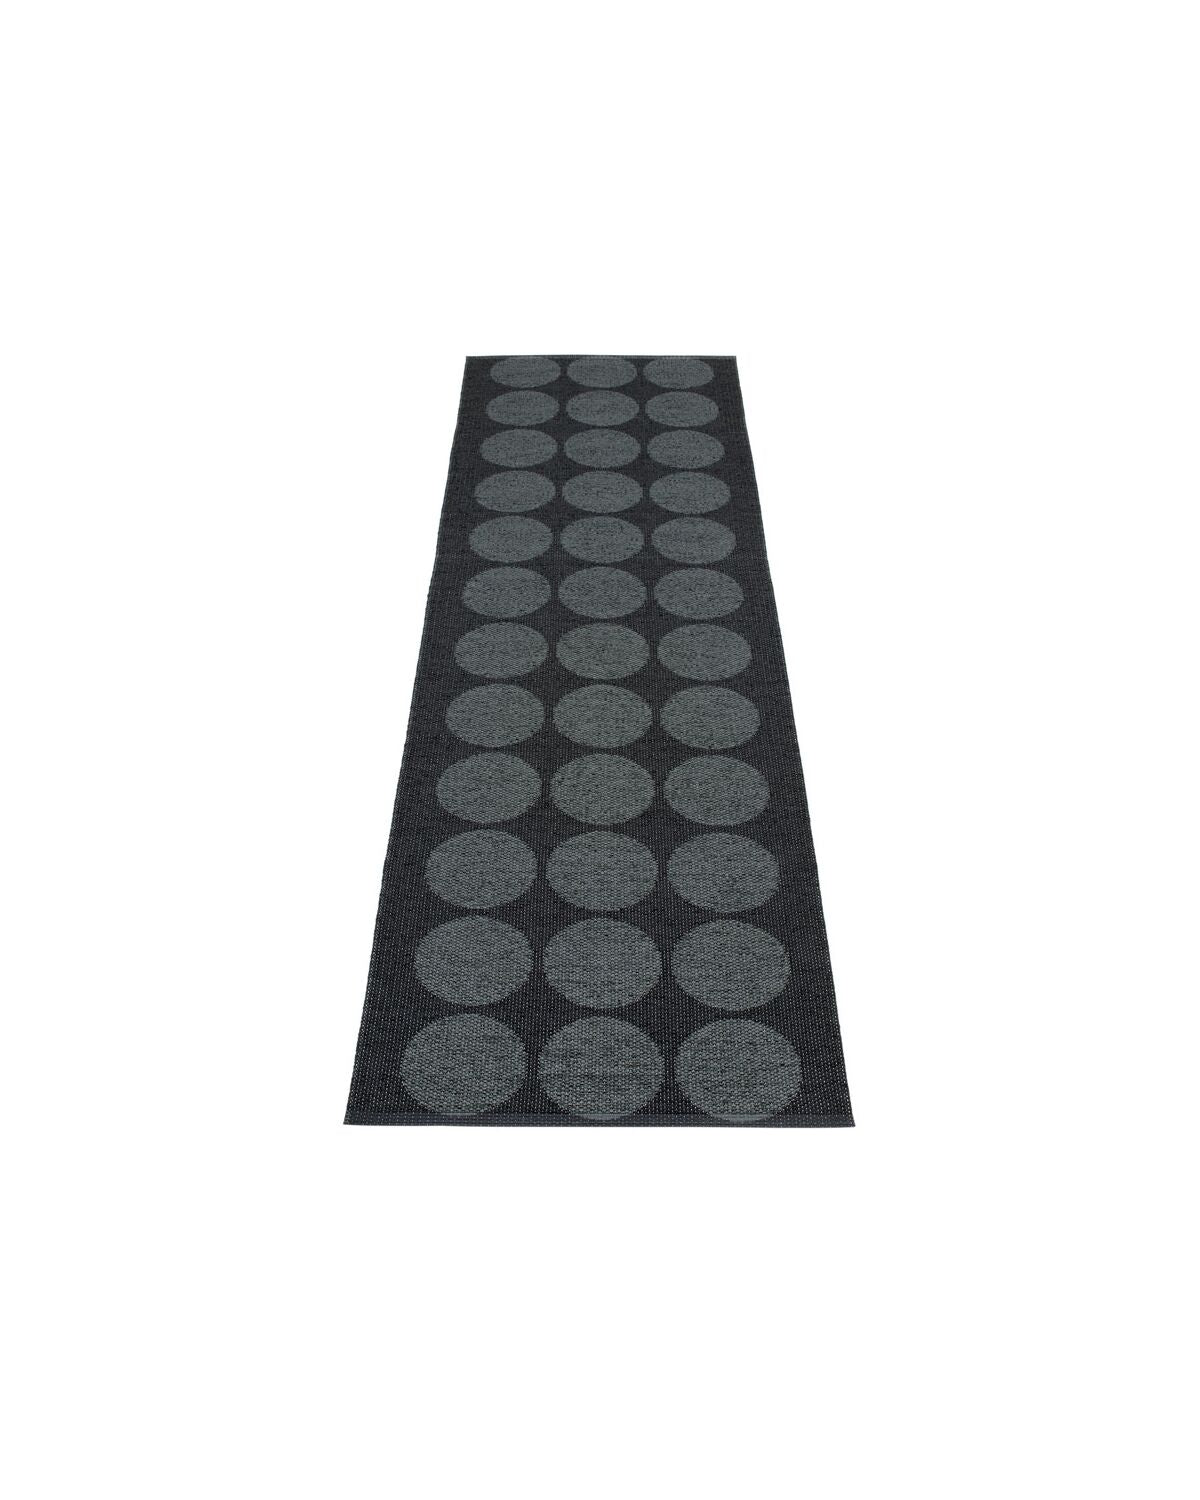 Rug HUGO Black Metallic